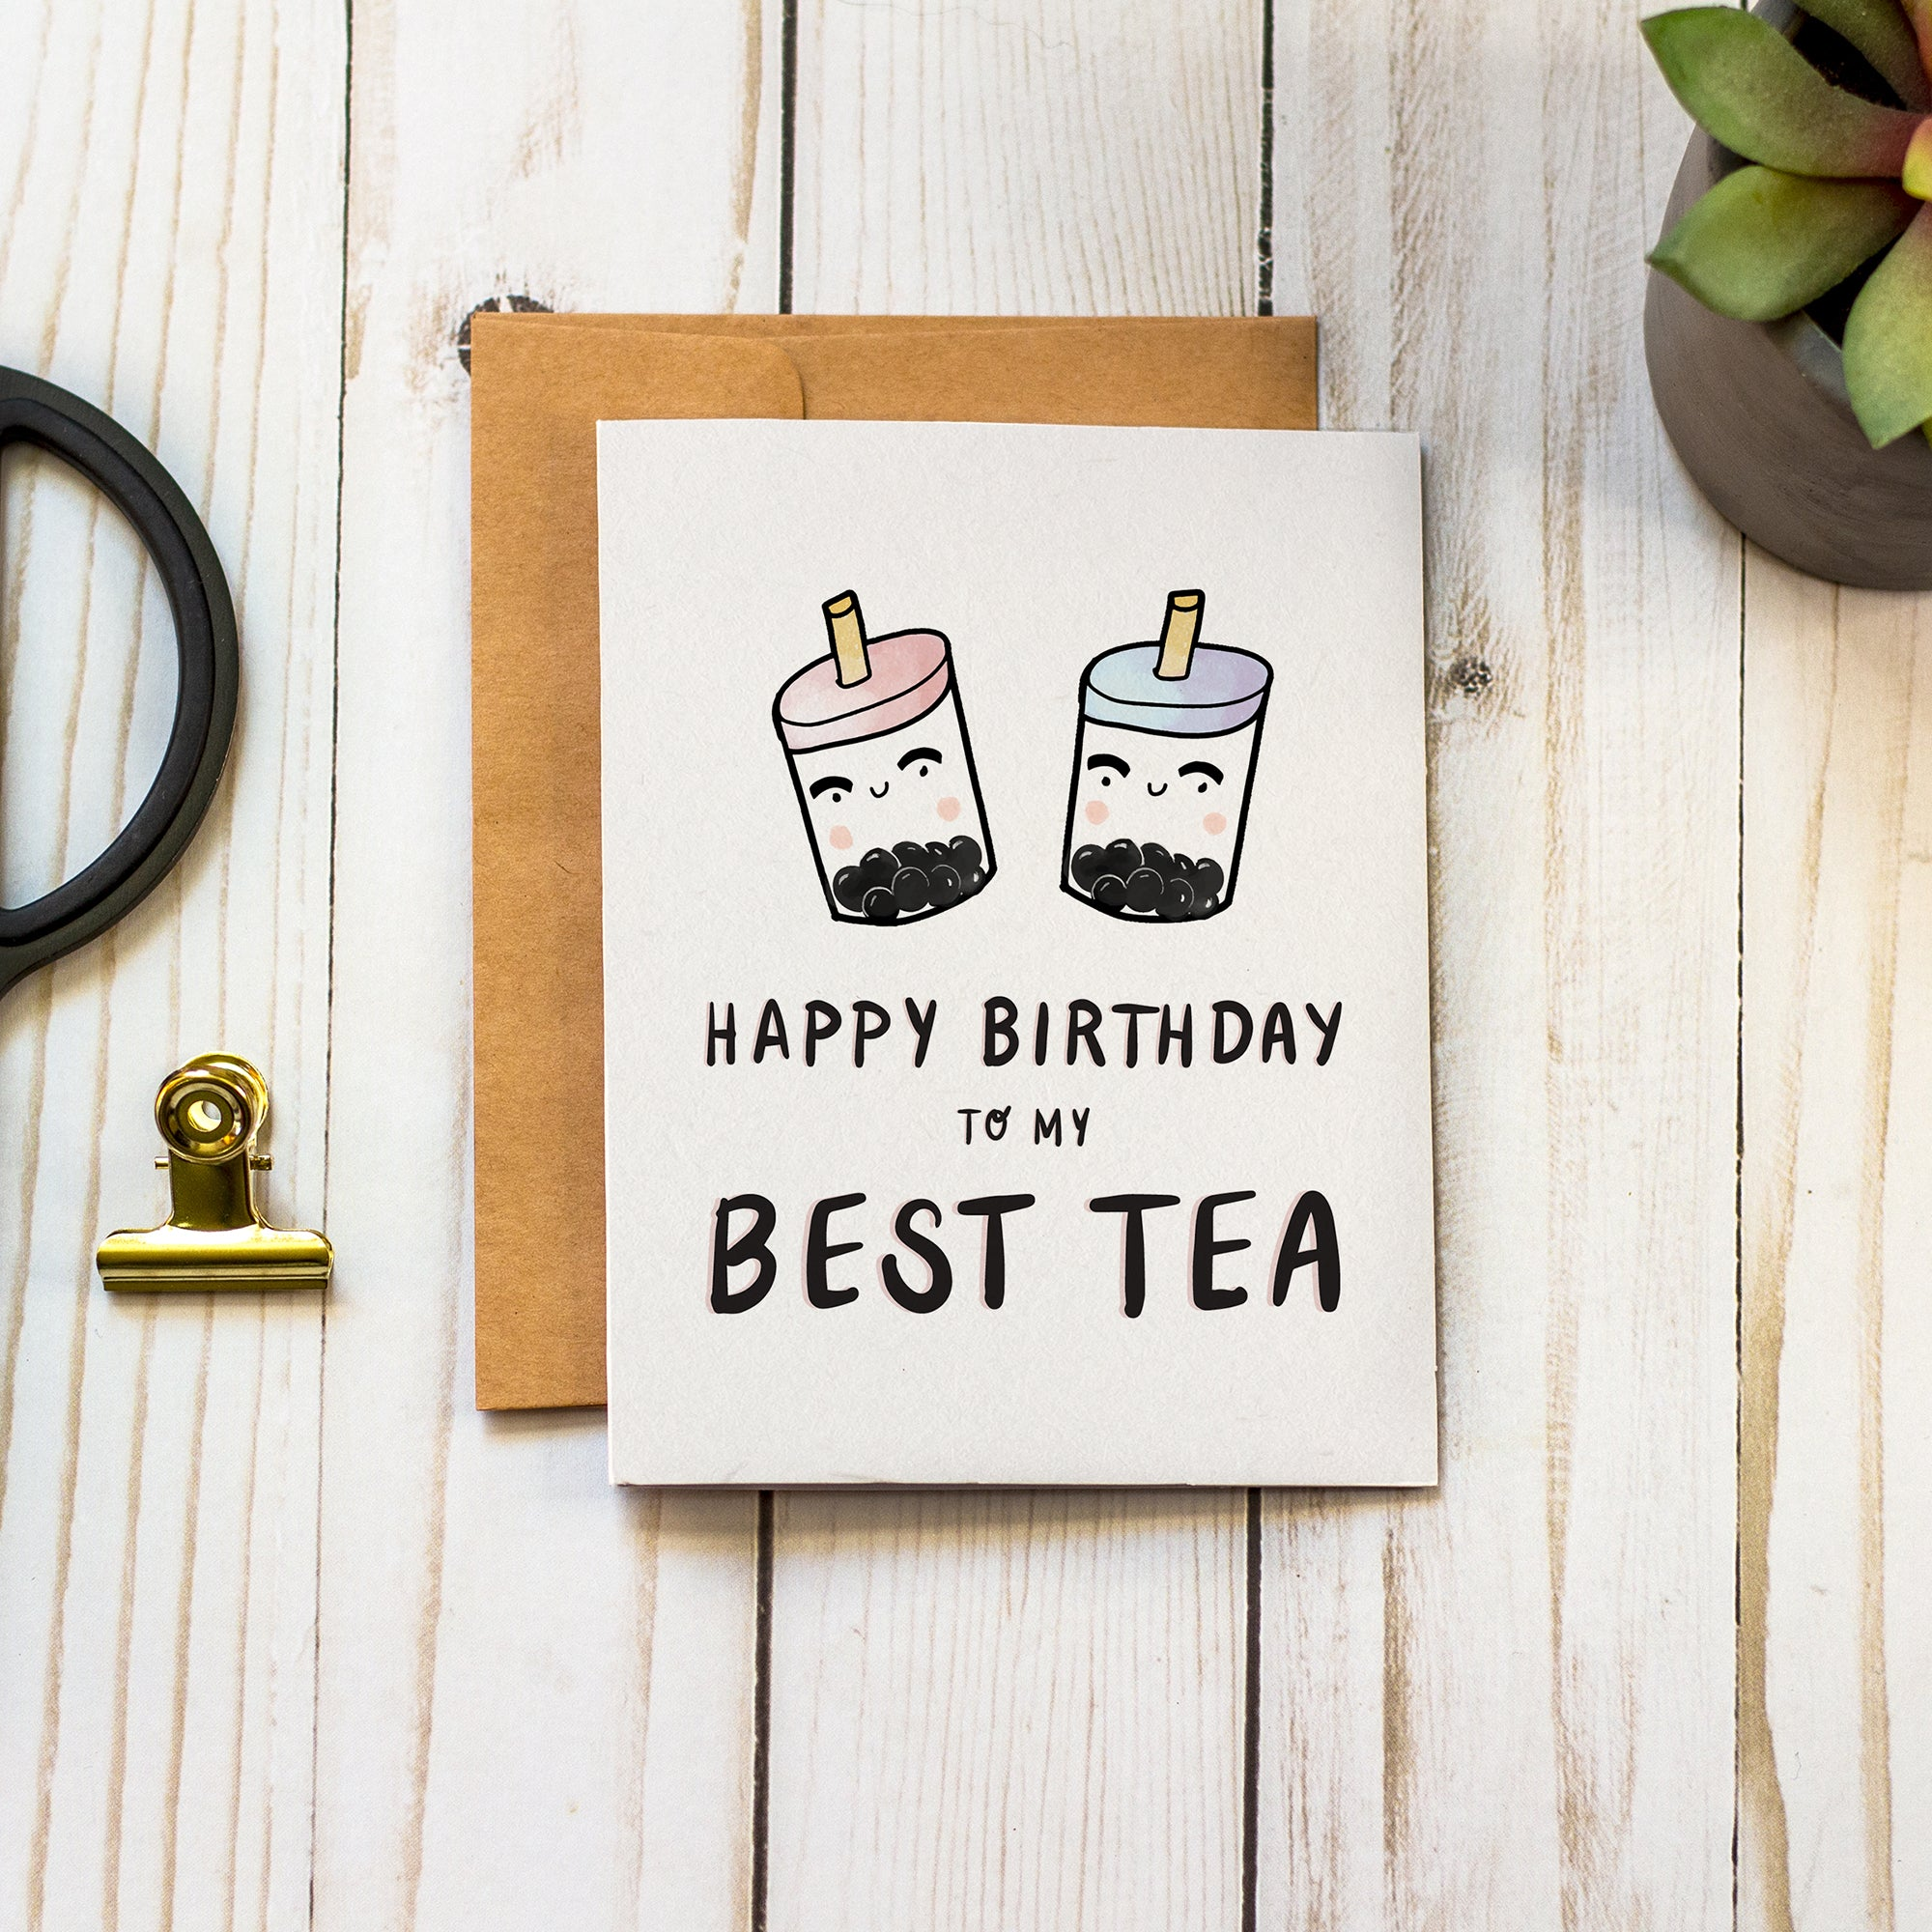 Happy Birthday to my Best Tea - Birthday Greeting Card